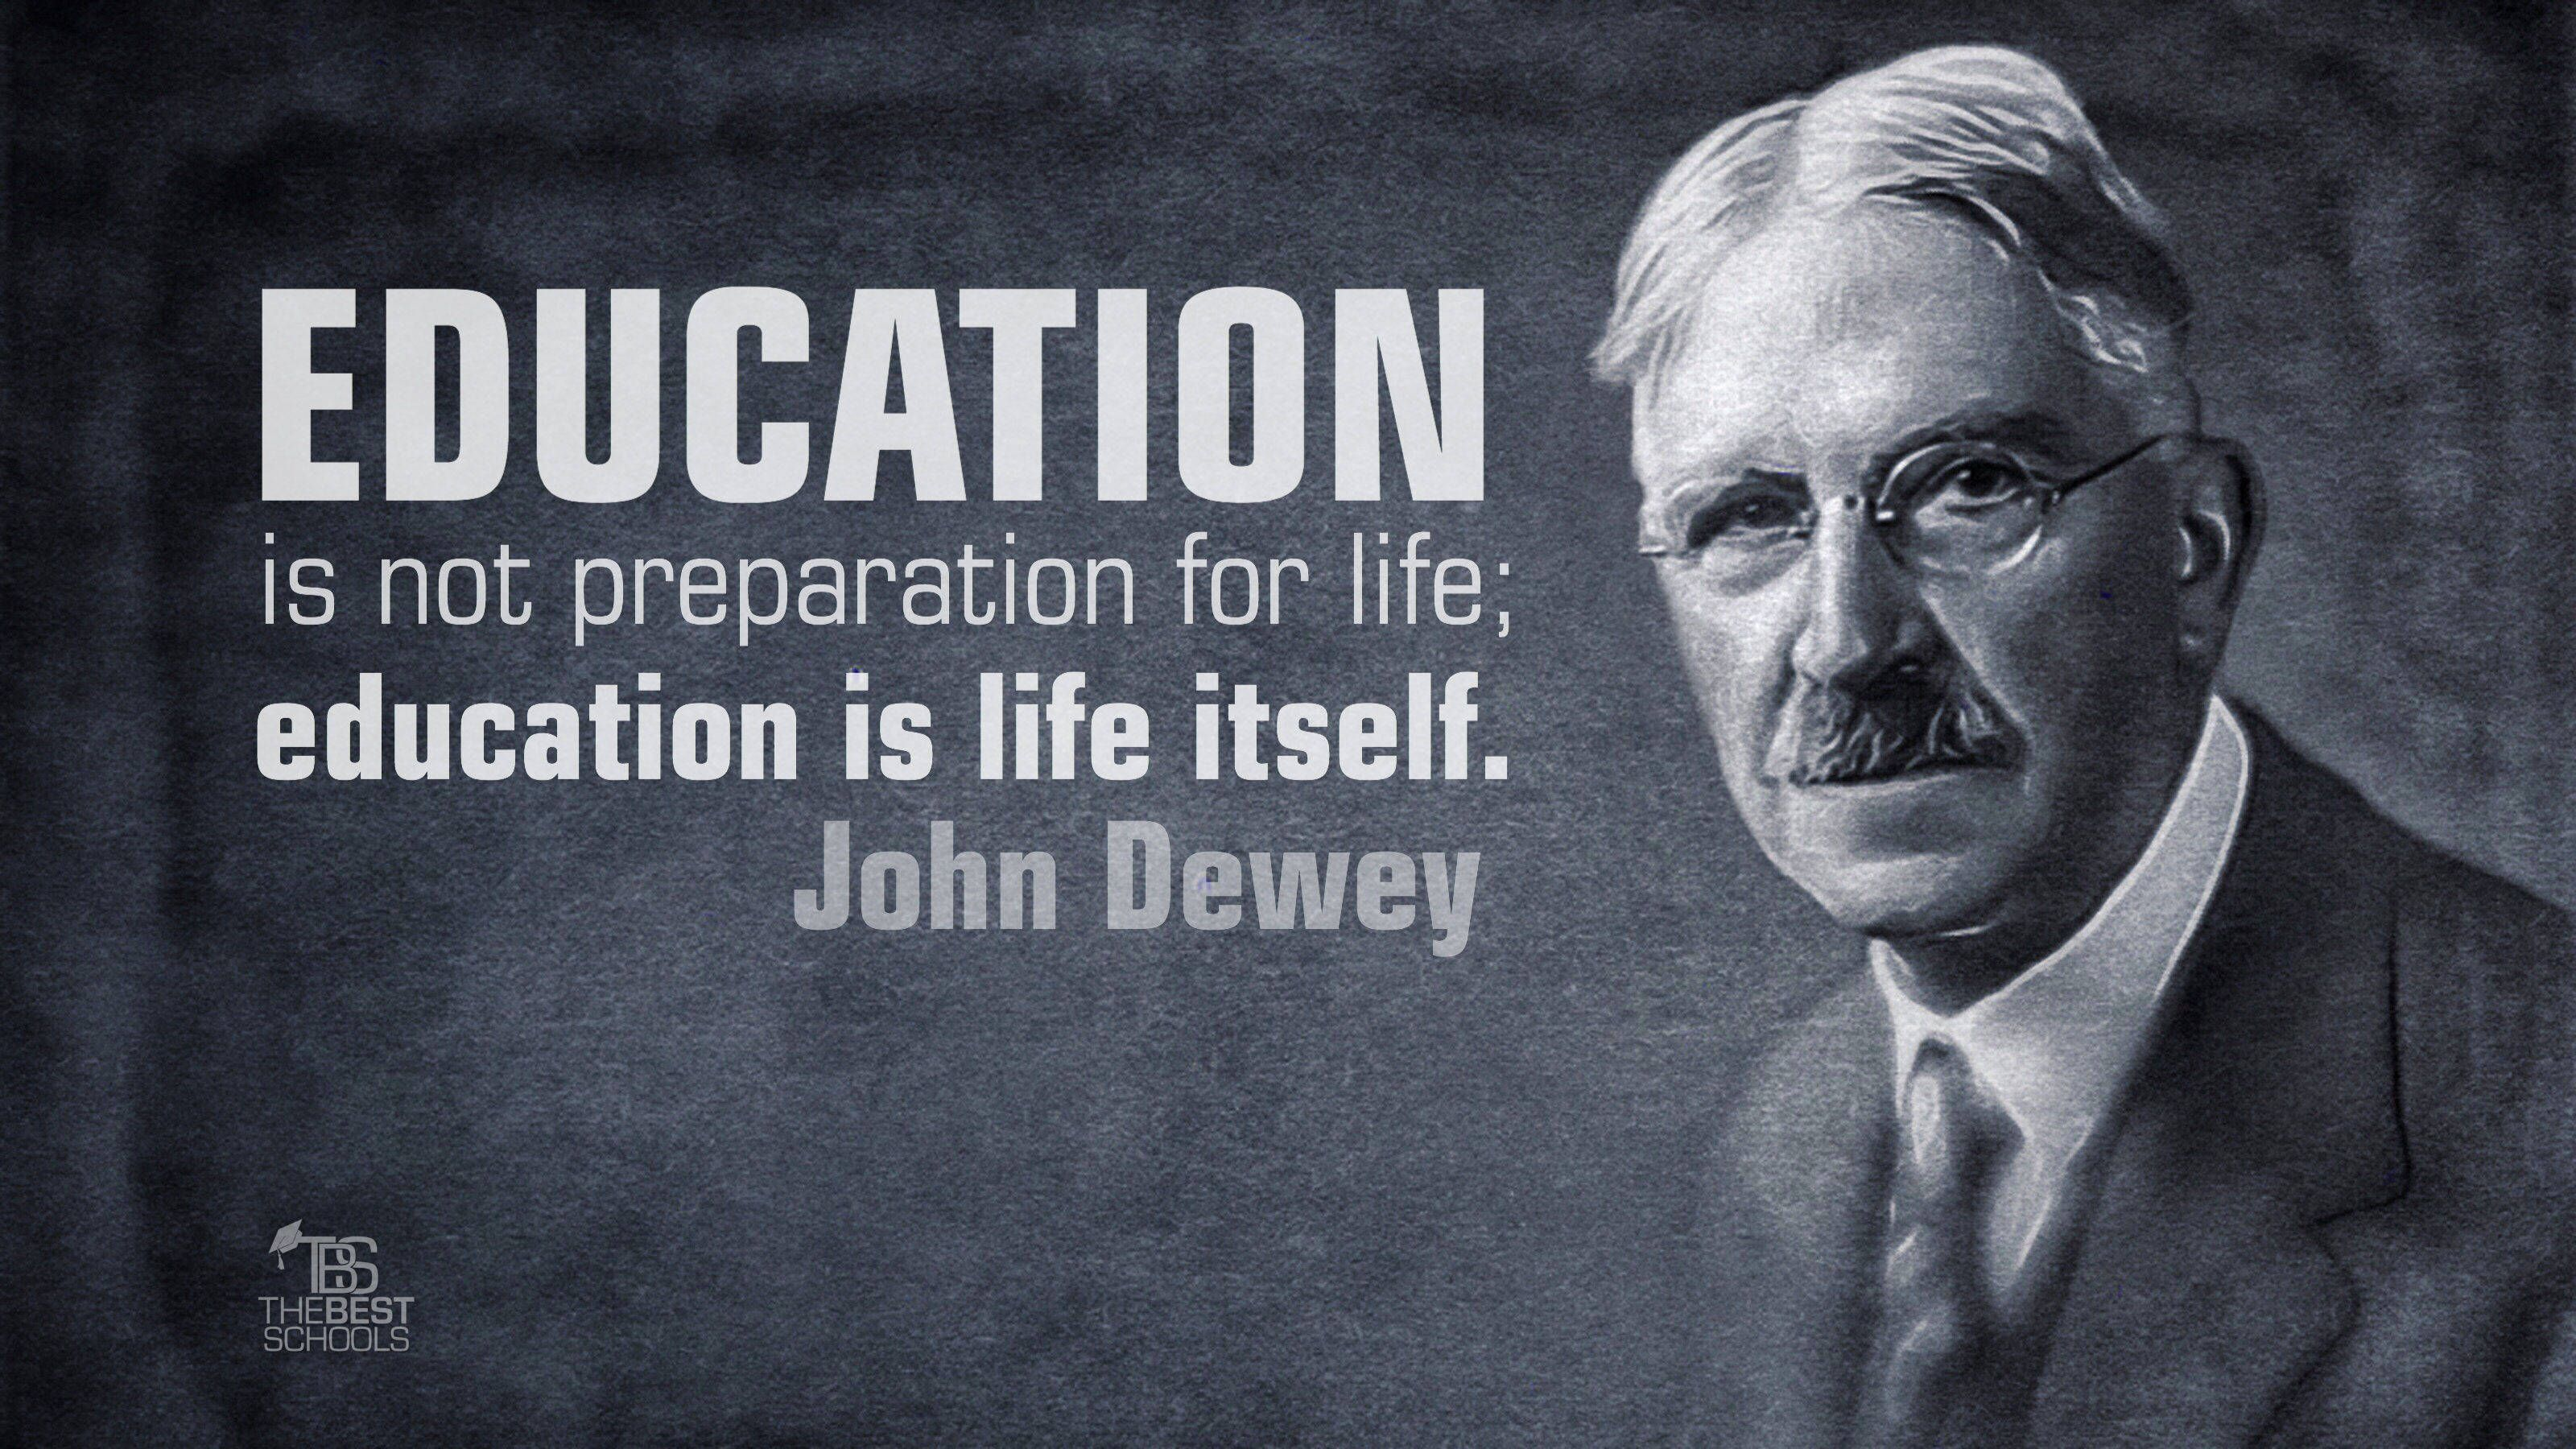 John Dewey on Education Being Life Itself | John dewey quotes, John dewey,  Education quotes